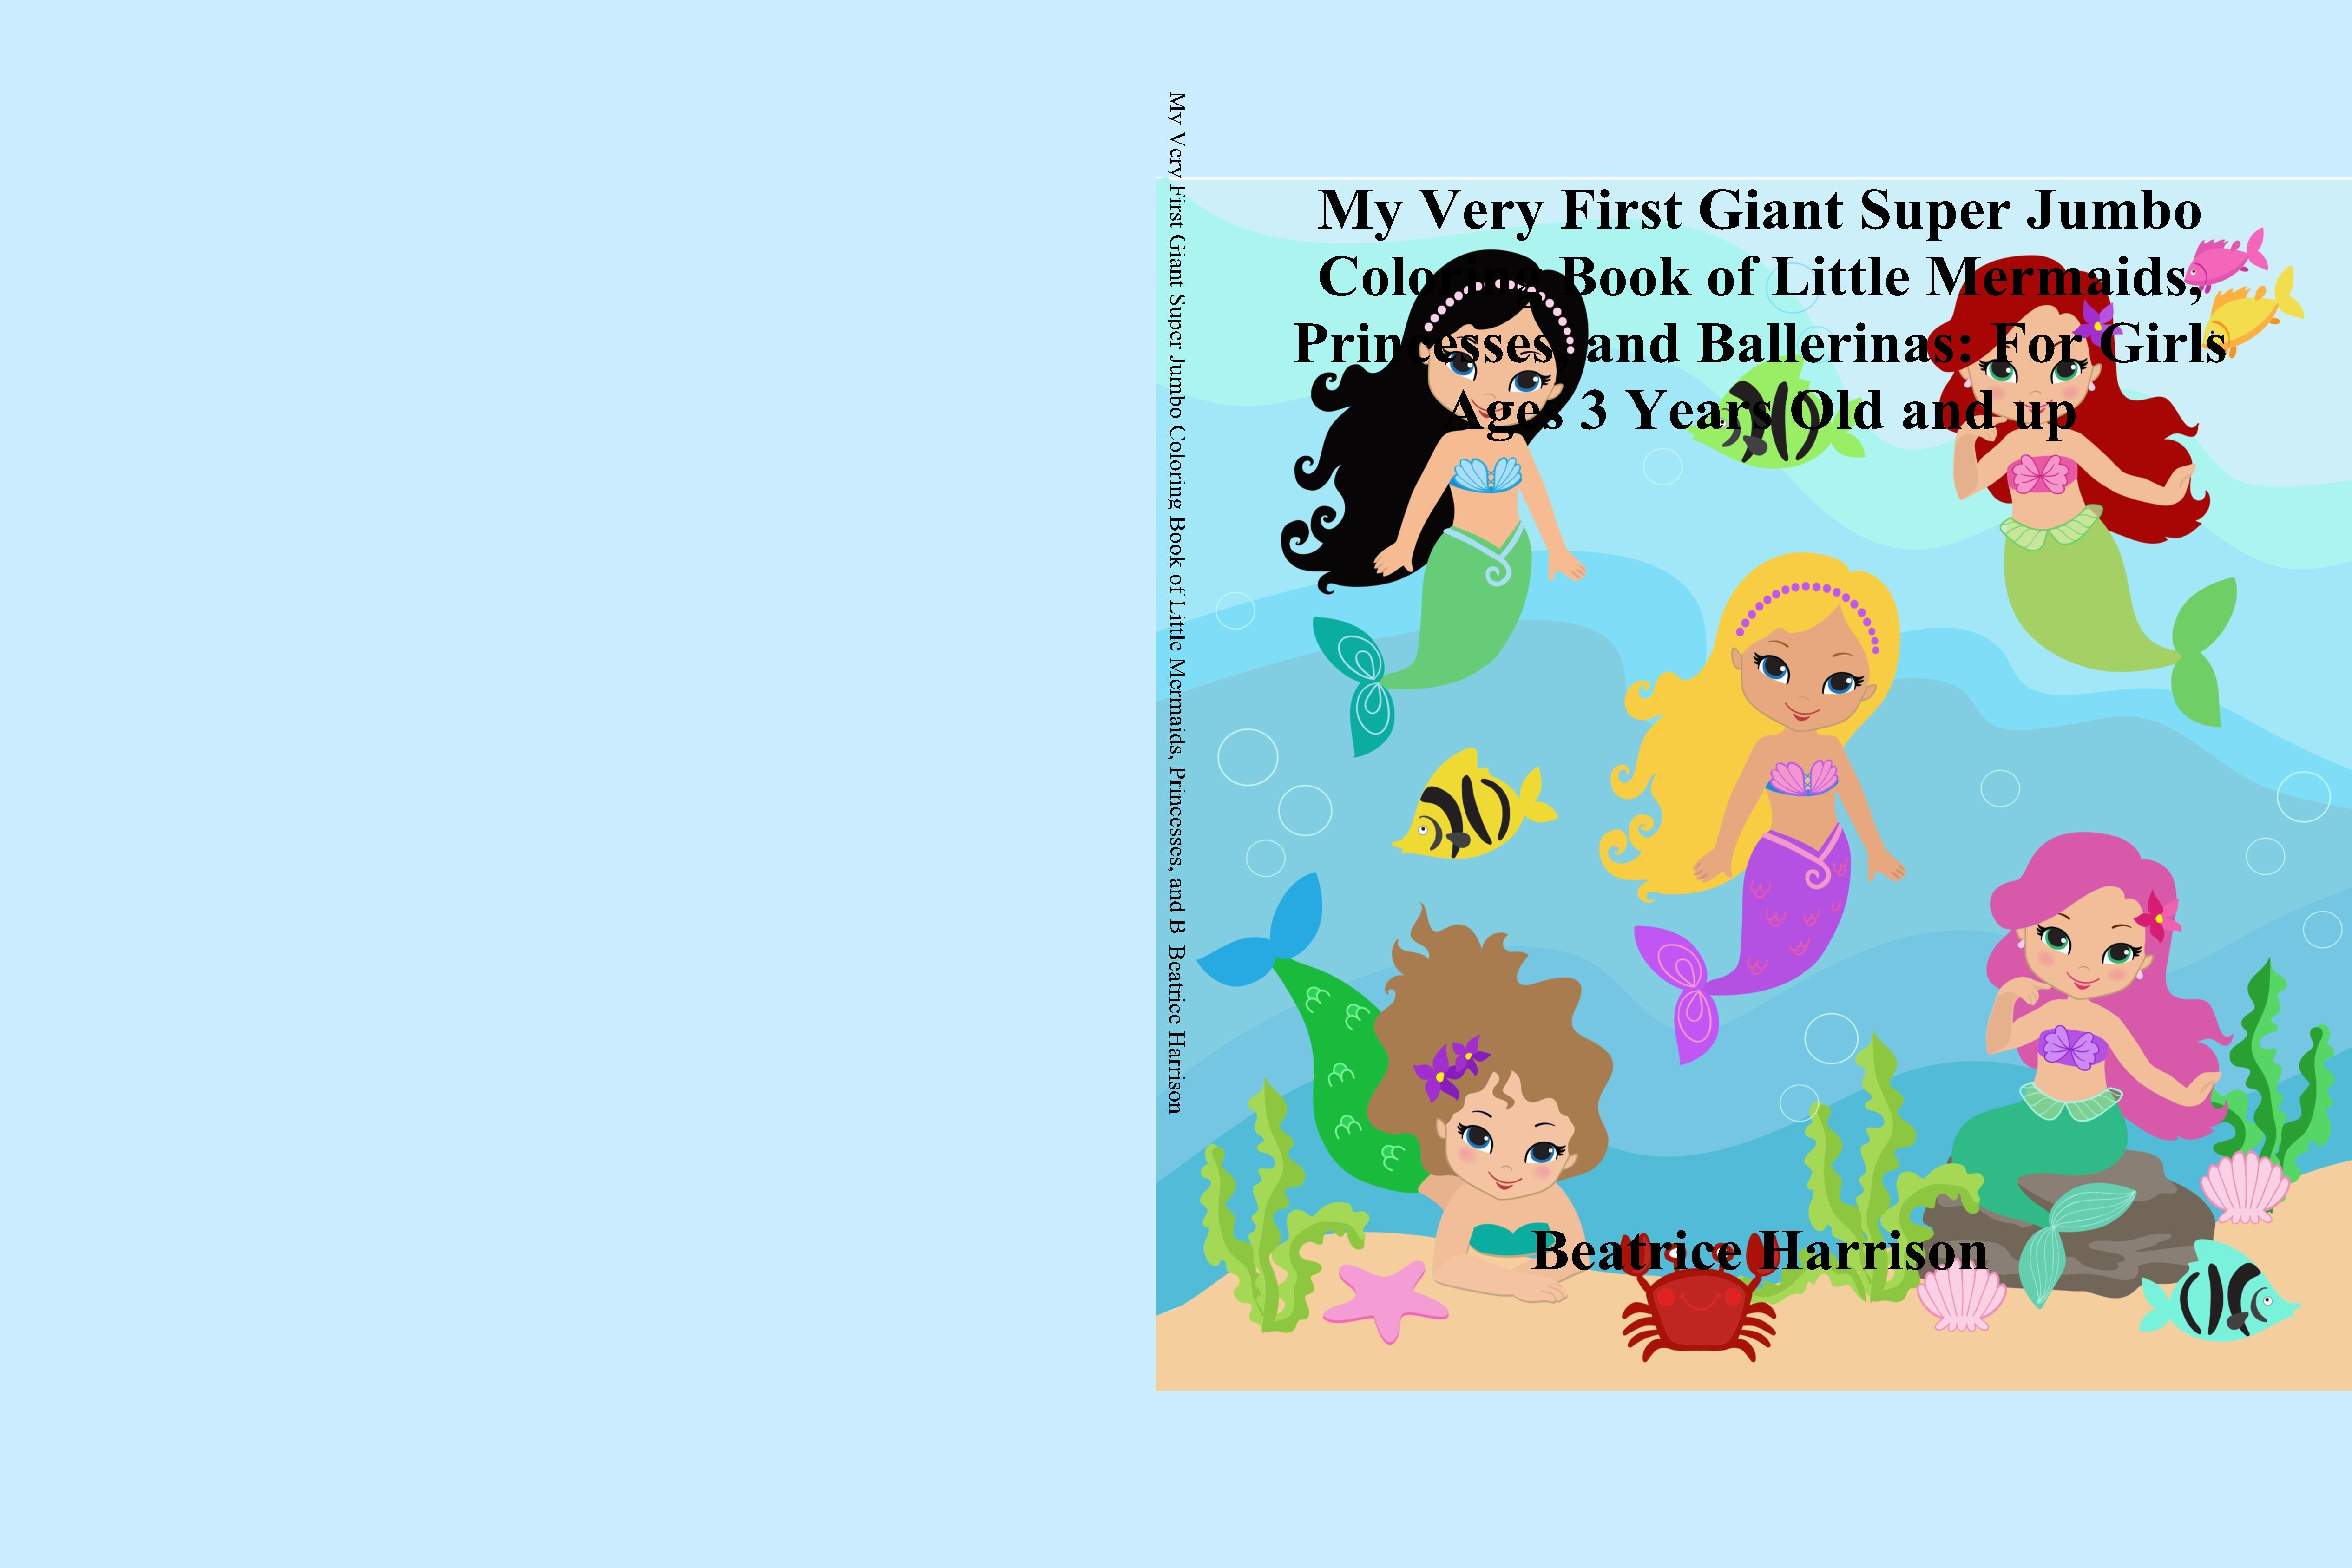 My Very First Giant Super Jumbo Coloring Book of Little Mermaids, Princesses, and Ballerinas: For Girls Ages 3 Years Old and up cover image